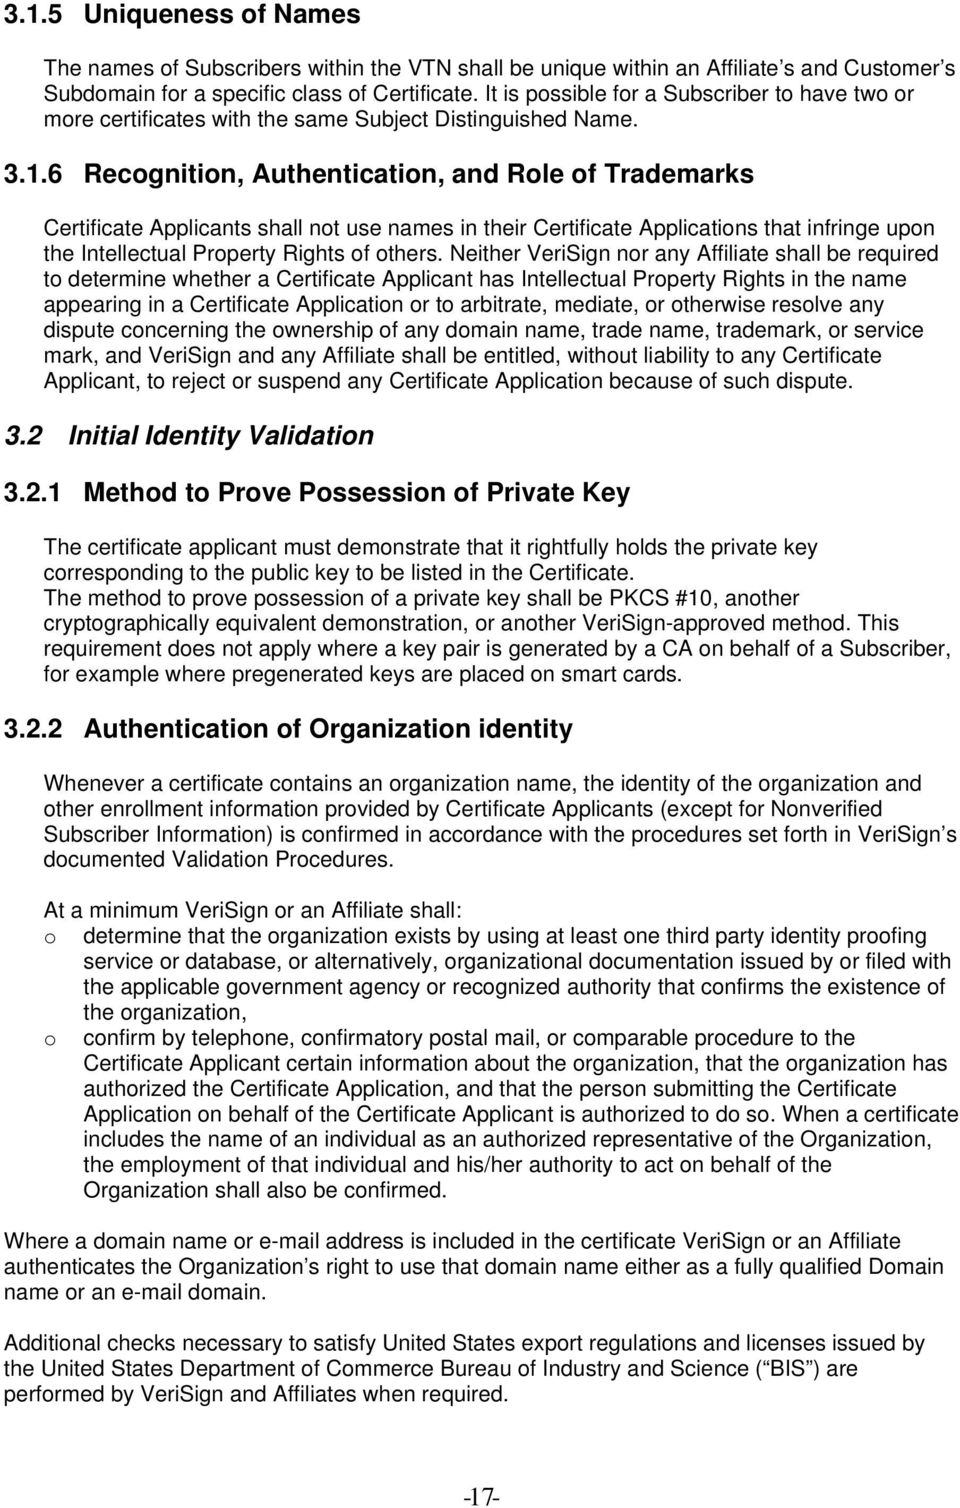 6 Recognition, Authentication, and Role of Trademarks Certificate Applicants shall not use names in their Certificate Applications that infringe upon the Intellectual Property Rights of others.